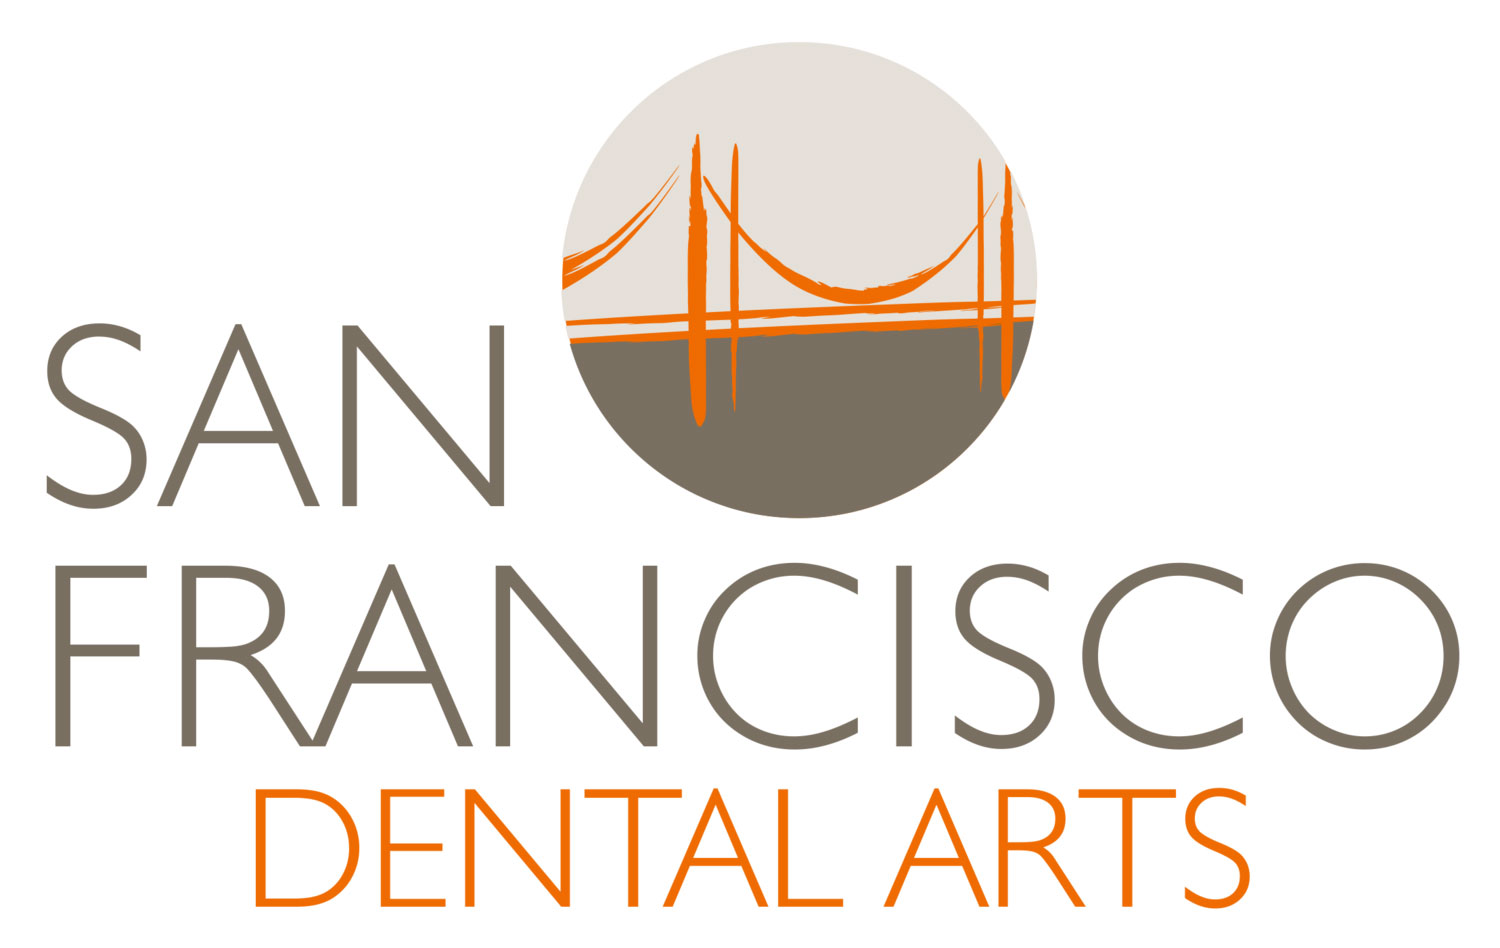 San Francisco Dental Arts